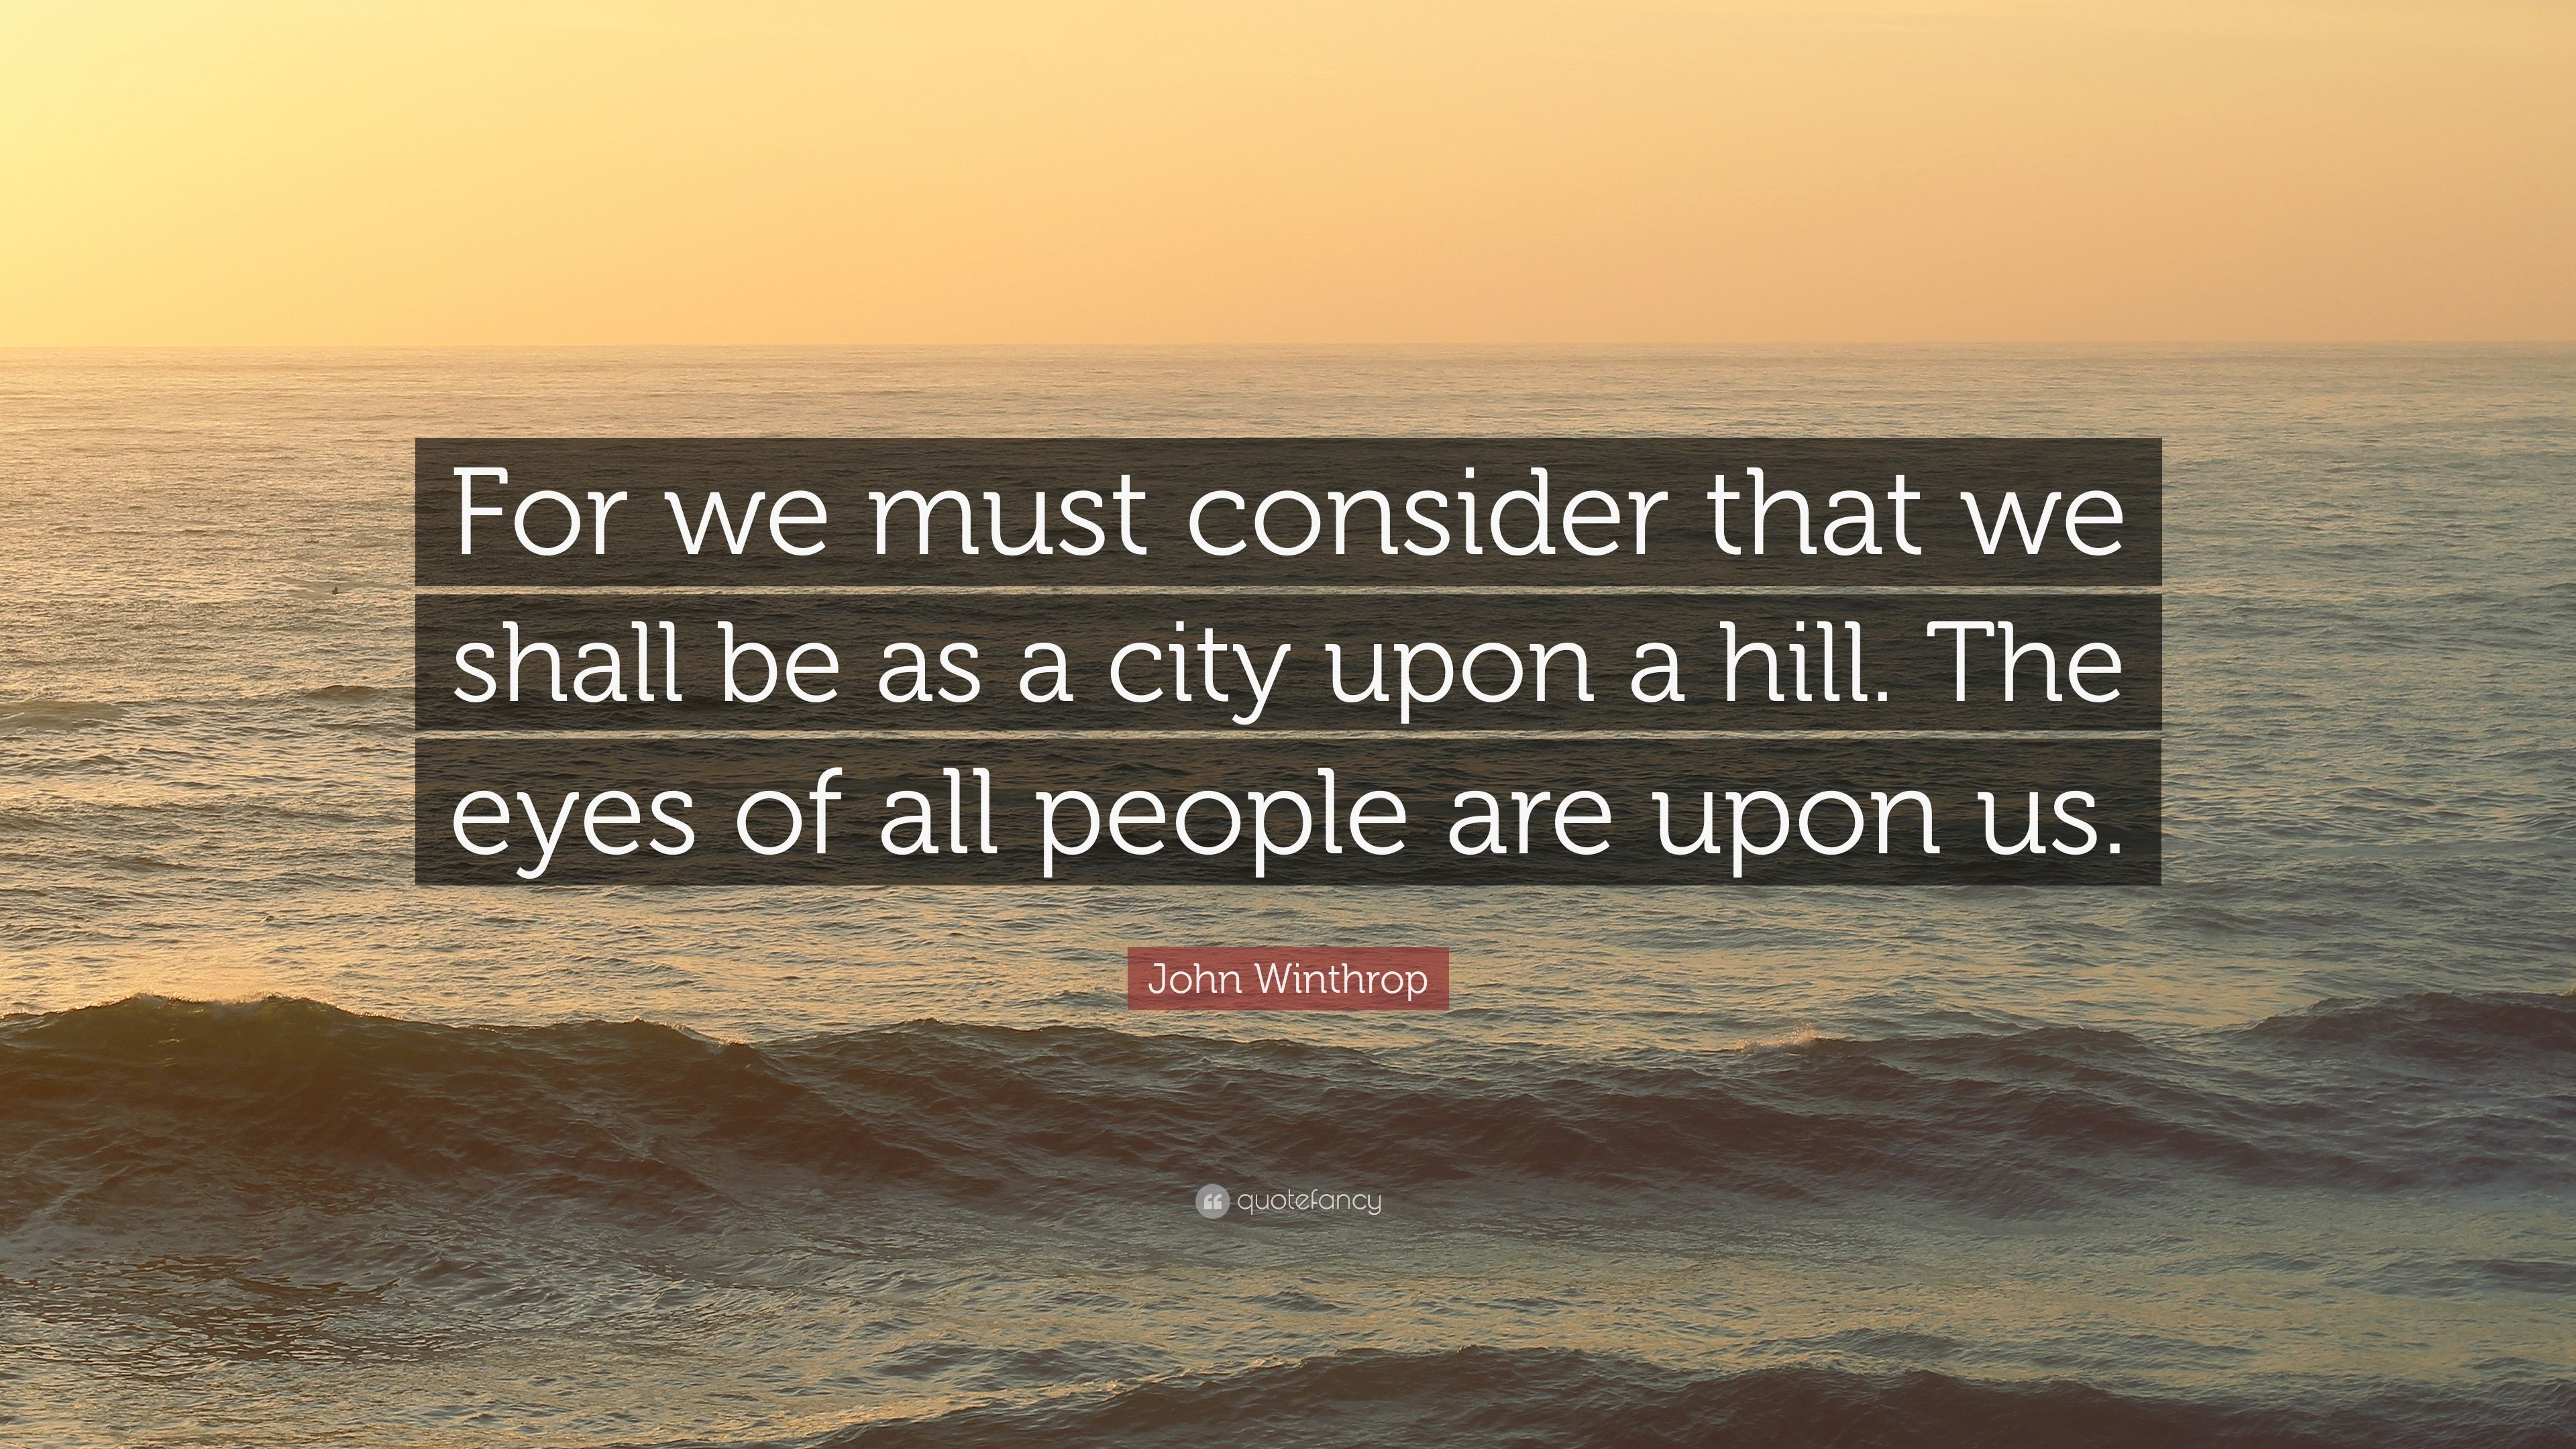 an analysis of city upon a hill by john winthrop Exceptionalist text in colonial american literature: john winthrop's a model of   england for we must consider that we shall be as a city upon a hill  but  she offers an incisive analysis of how the category of americanness (which is  also.